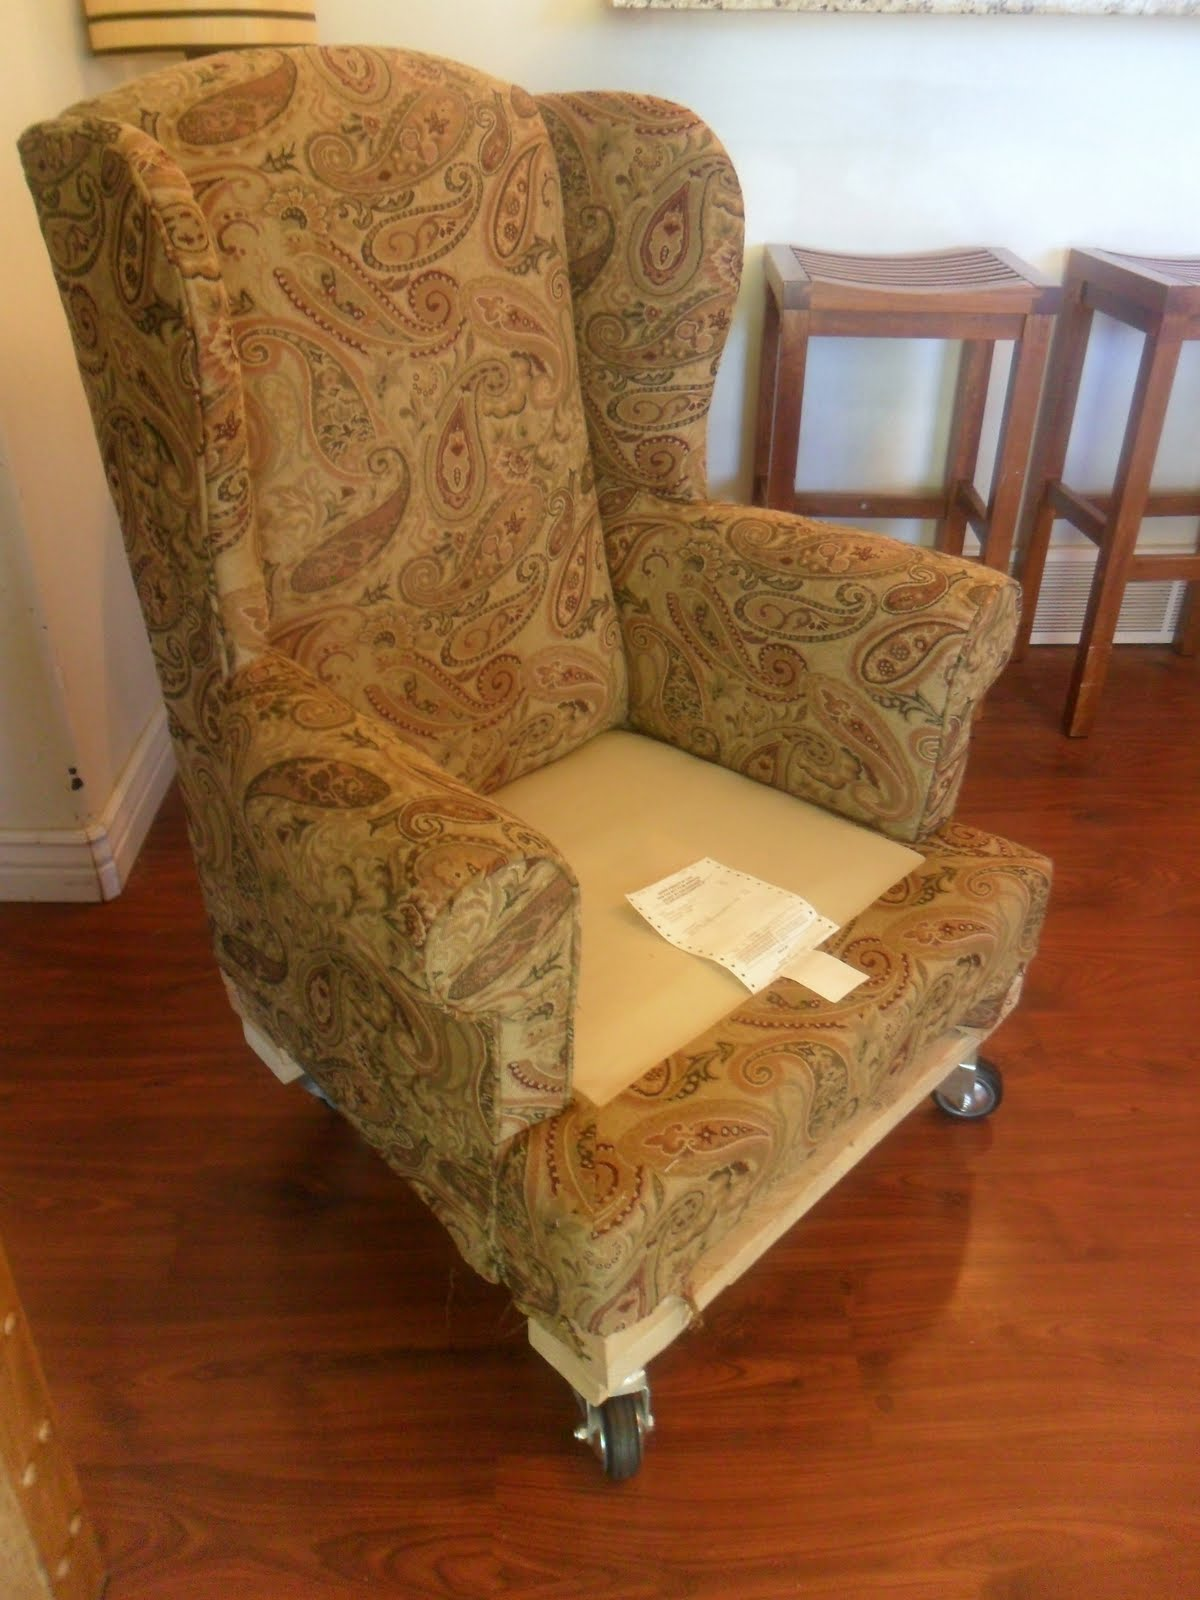 floral slipcovers for wingback chairs | Custom Slipcovers by Shelley: Floral Wingback chair with ...